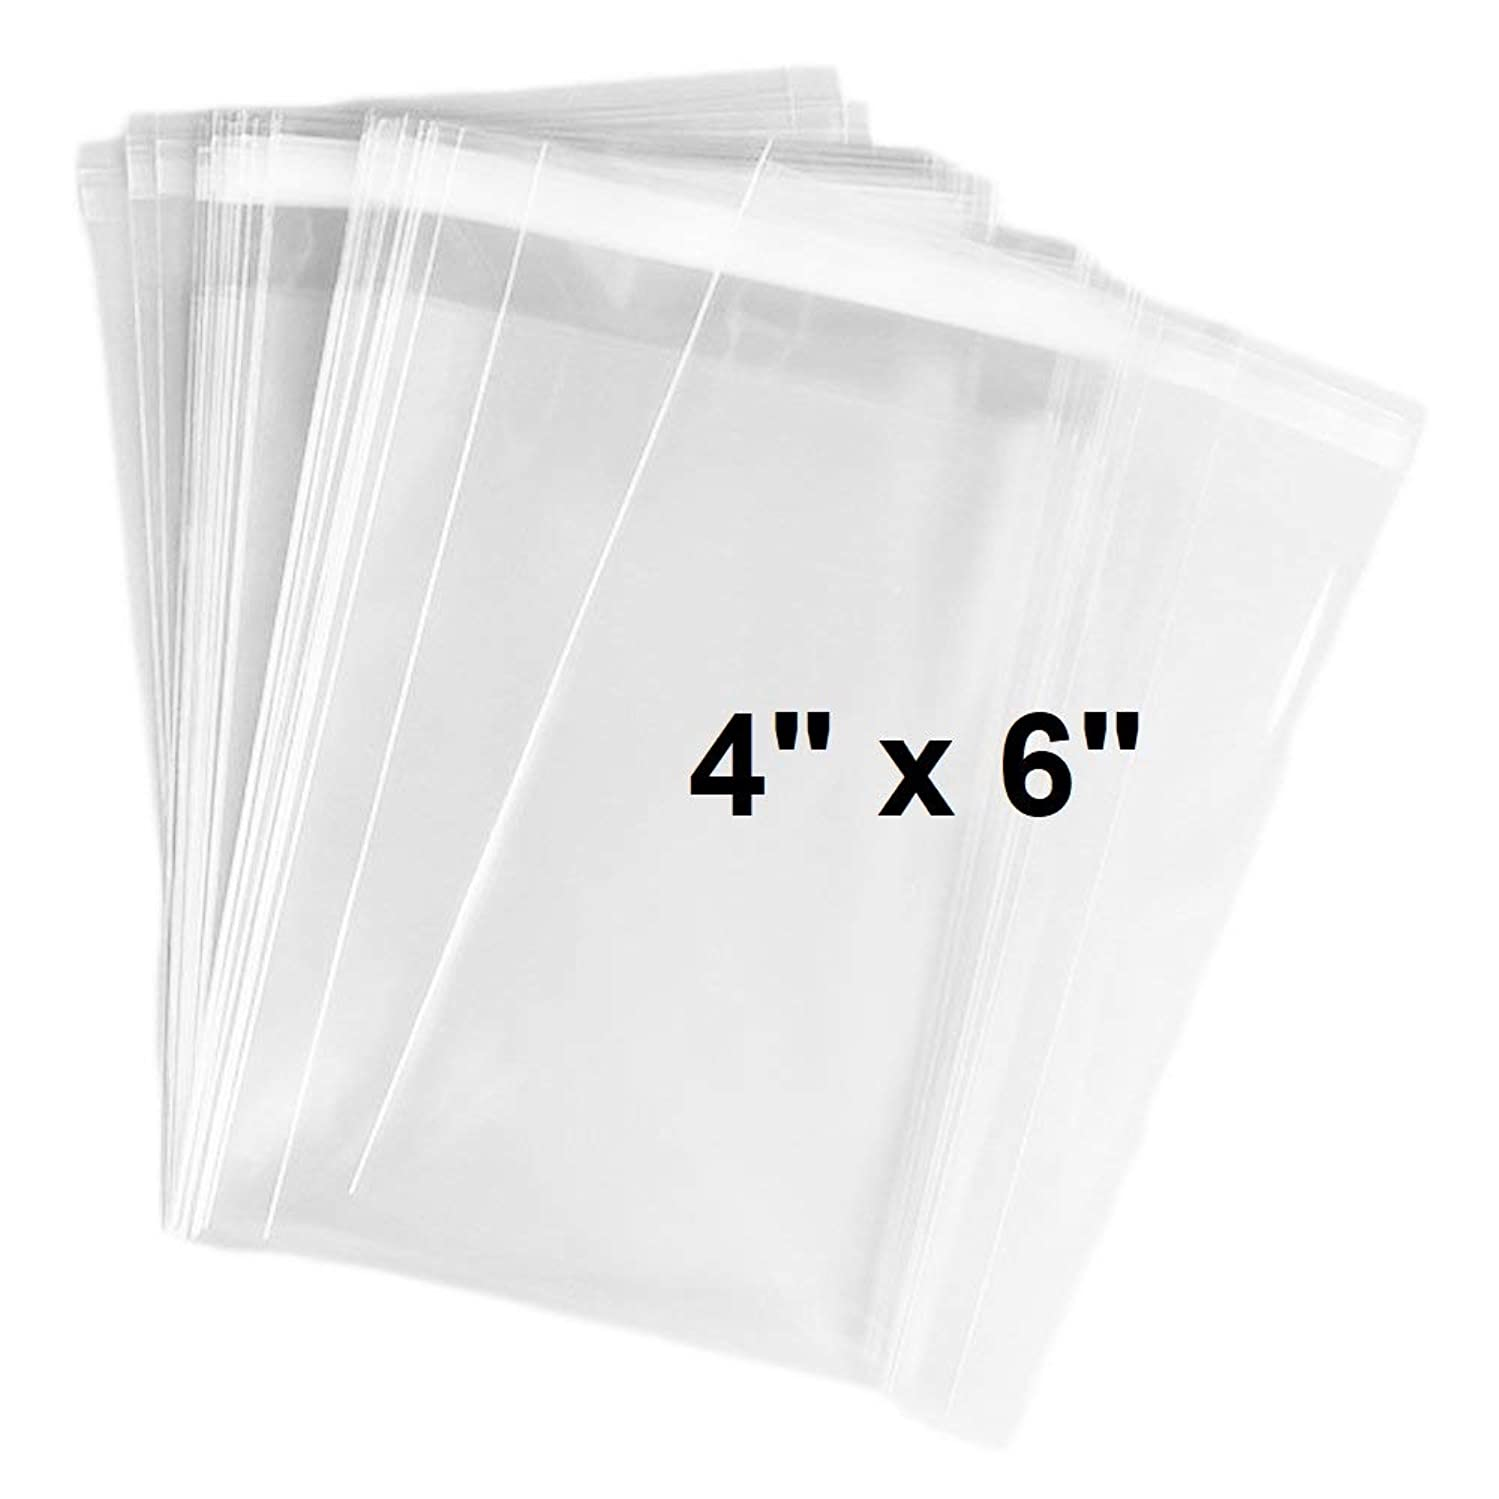 888 Display USA 100ct Clear Plastic Bags 4x6-2 mils Thick Self Sealing OPP Cello Bags for Bakery Cookies Decorative Wrappers (4'' x 6'')